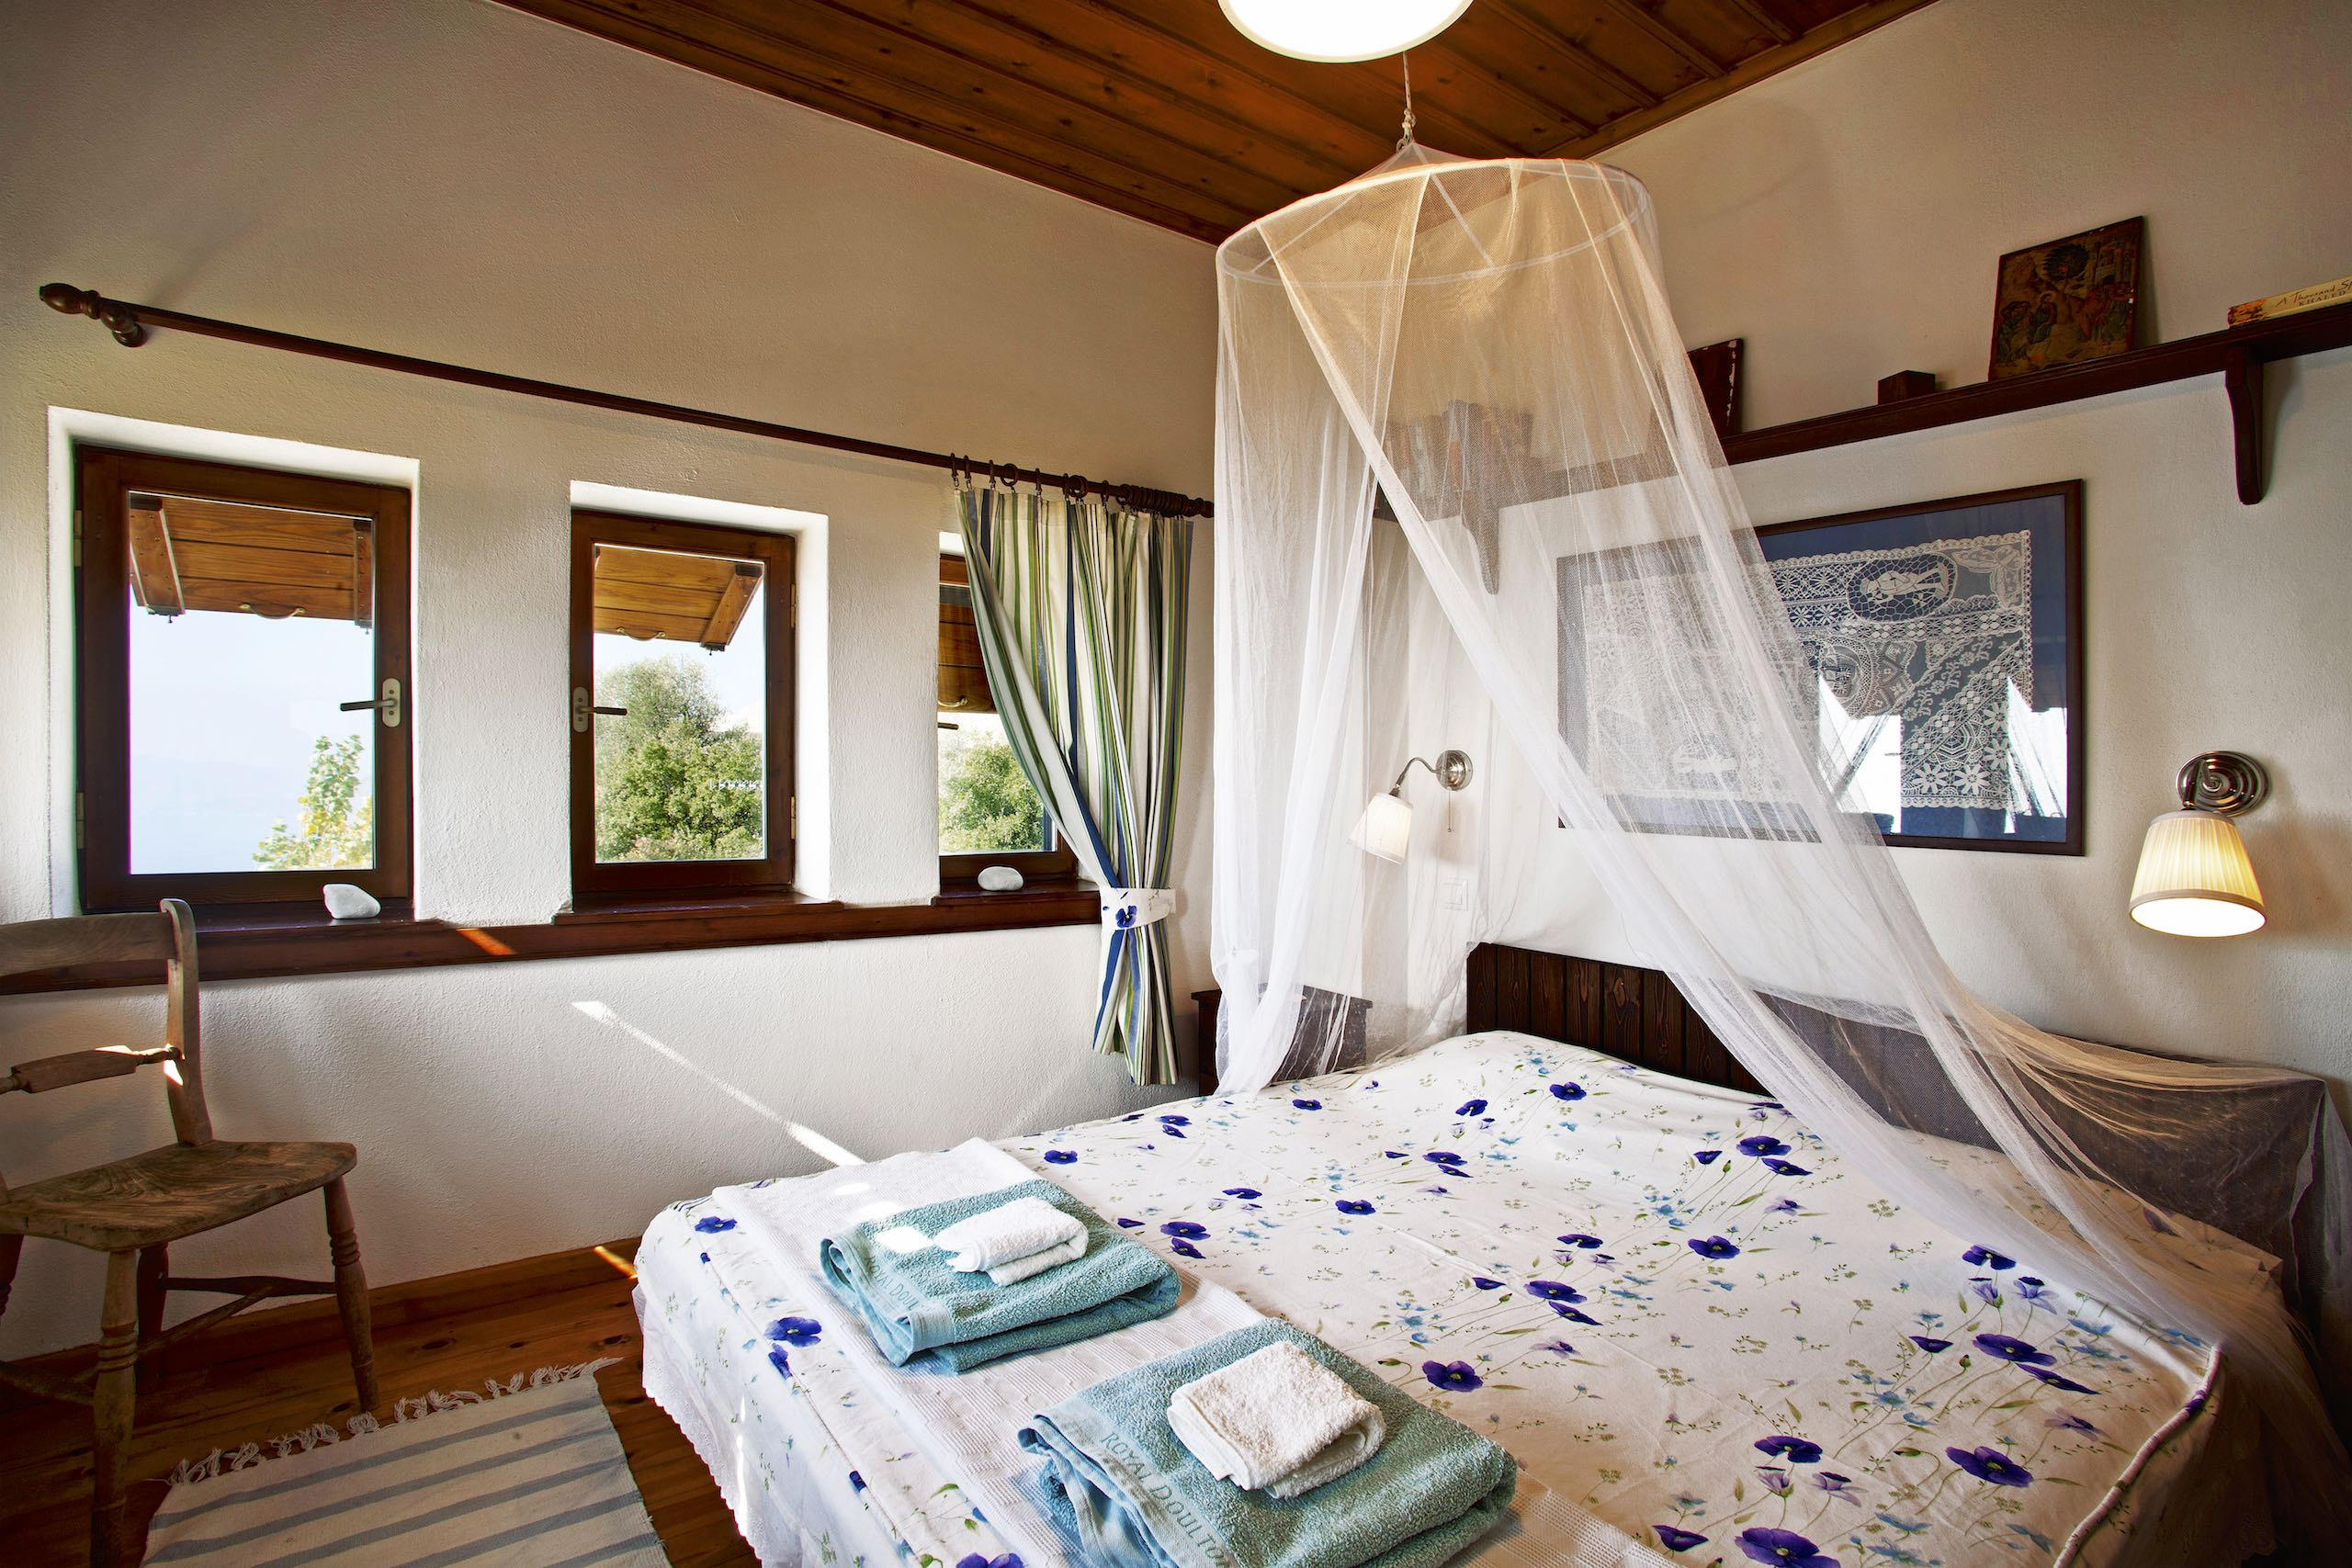 Towels on the double bed with a mosquito net in Villa Selini in Pelion.